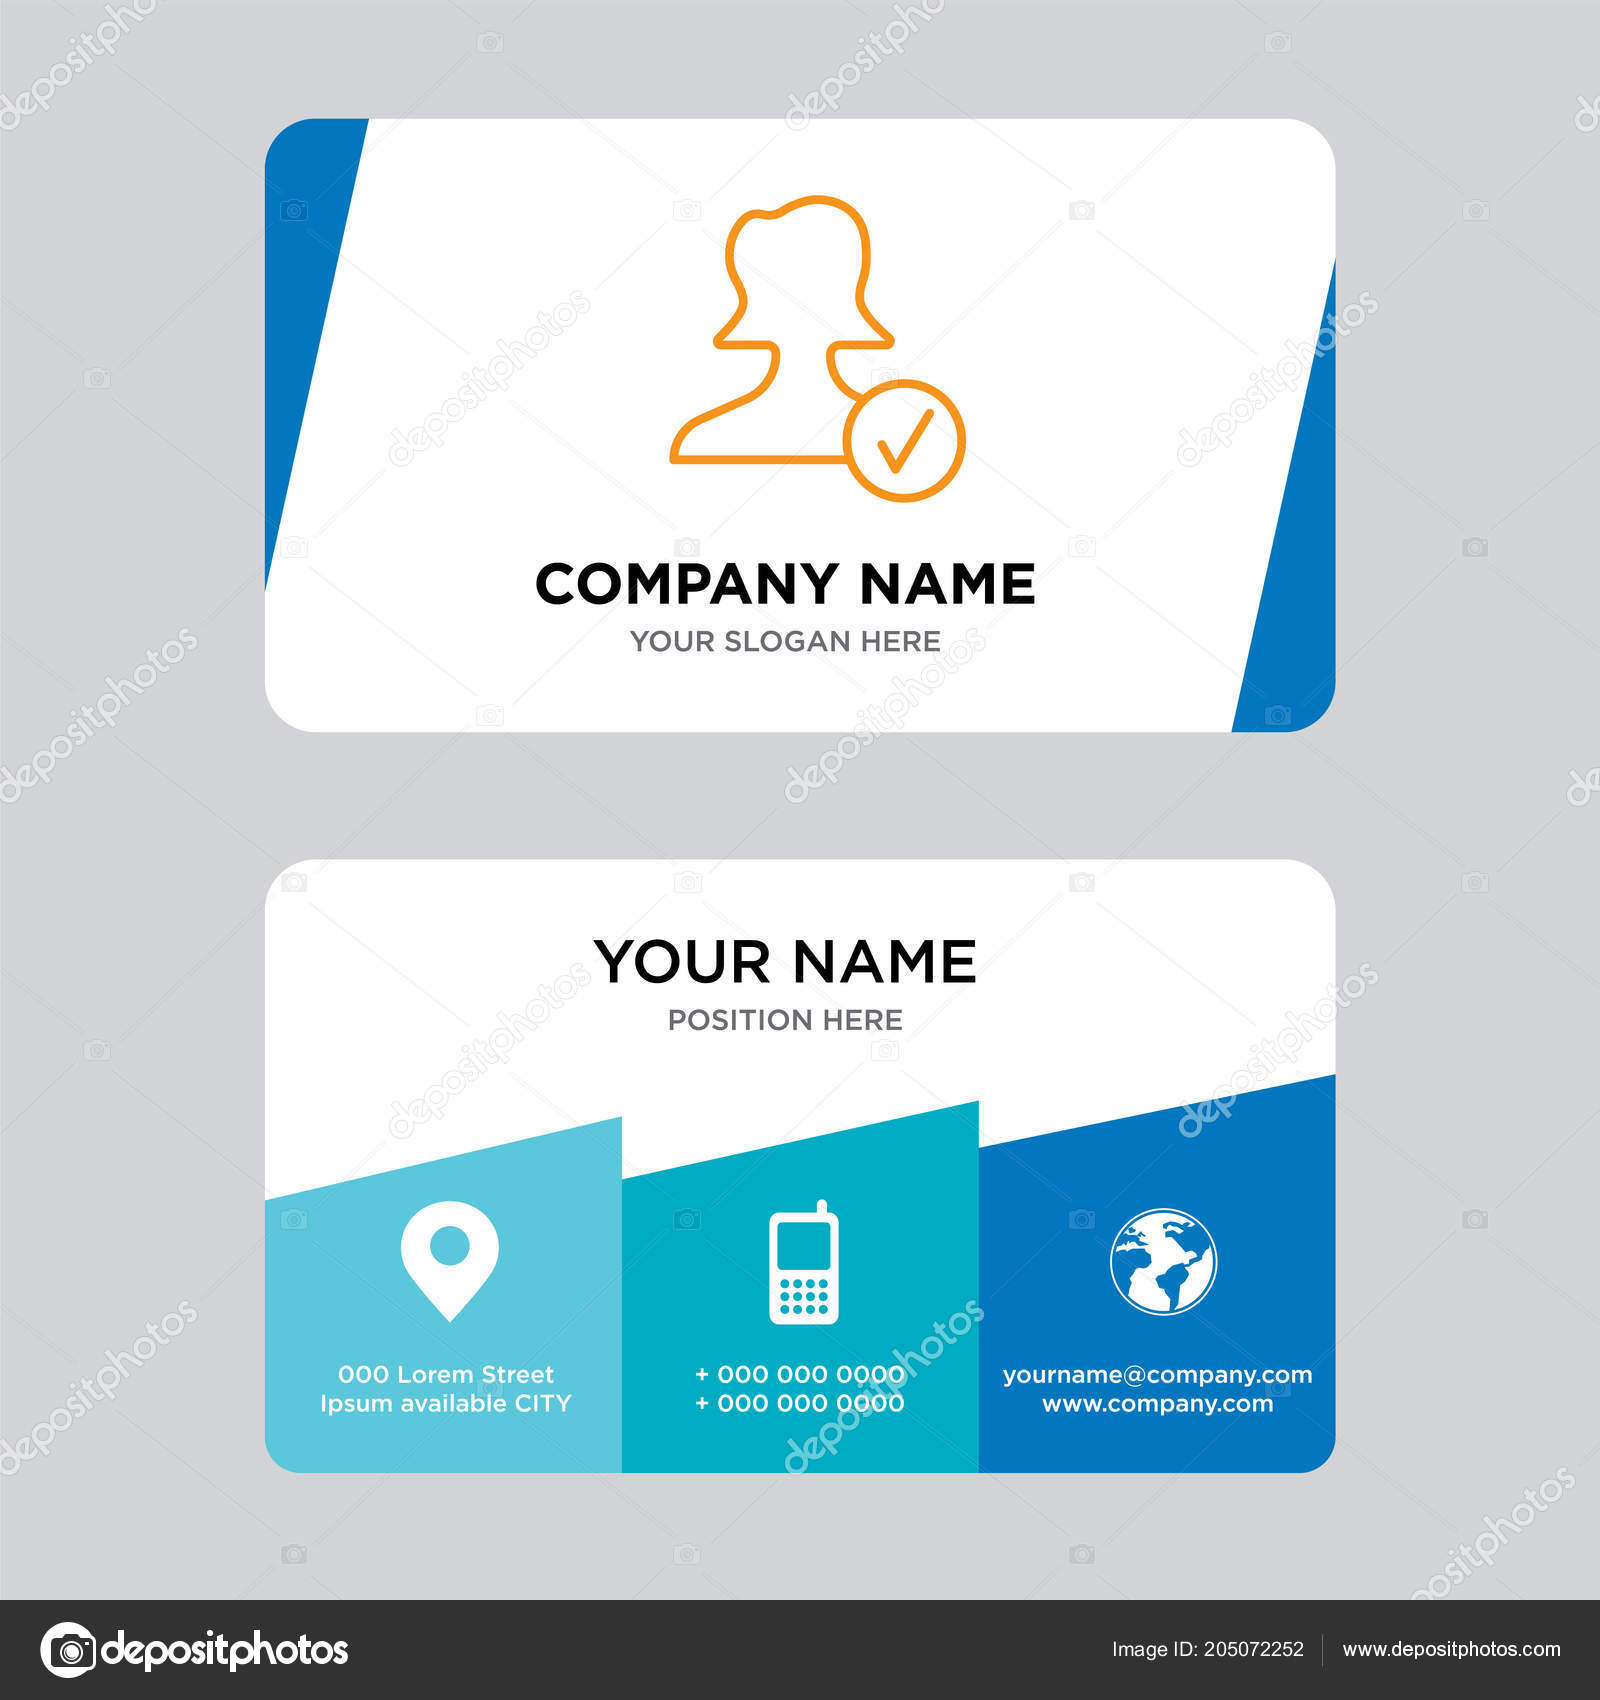 Avatar business card design template visiting your company modern avatar business card design template visiting your company modern creative fotografia de stock reheart Gallery